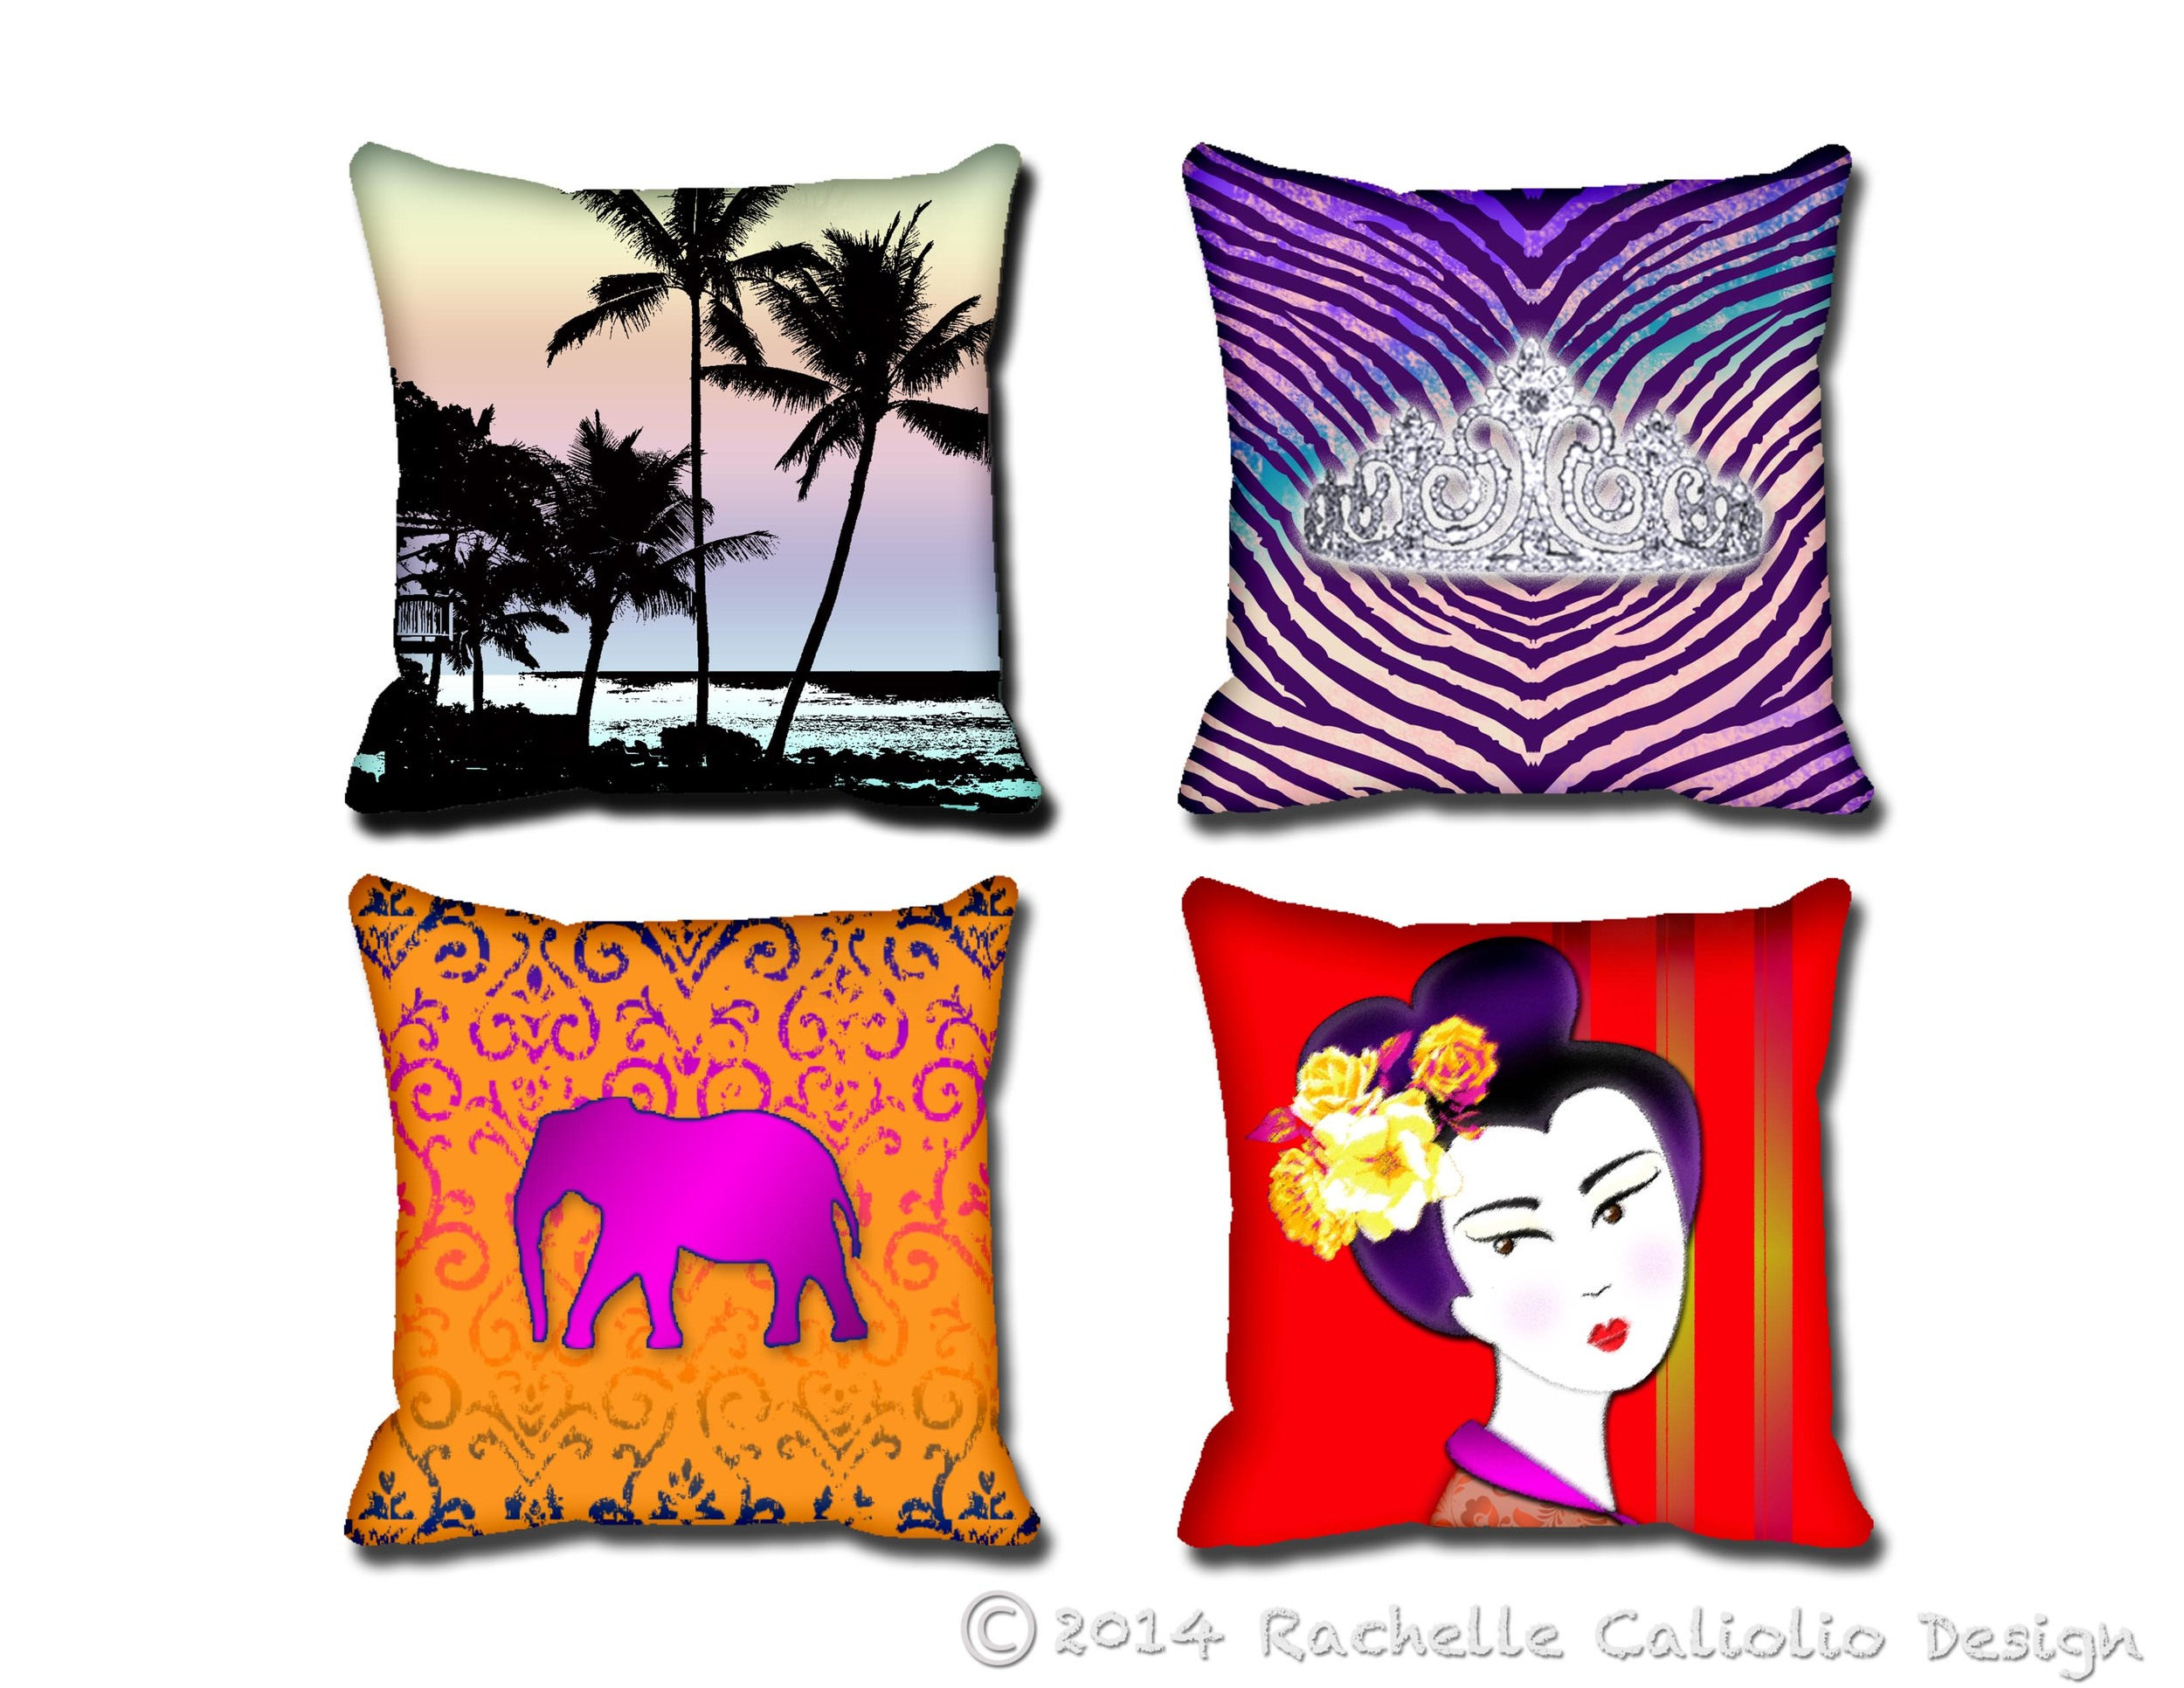 RCALIOLIO NOVELTY PILLOWS.jpg